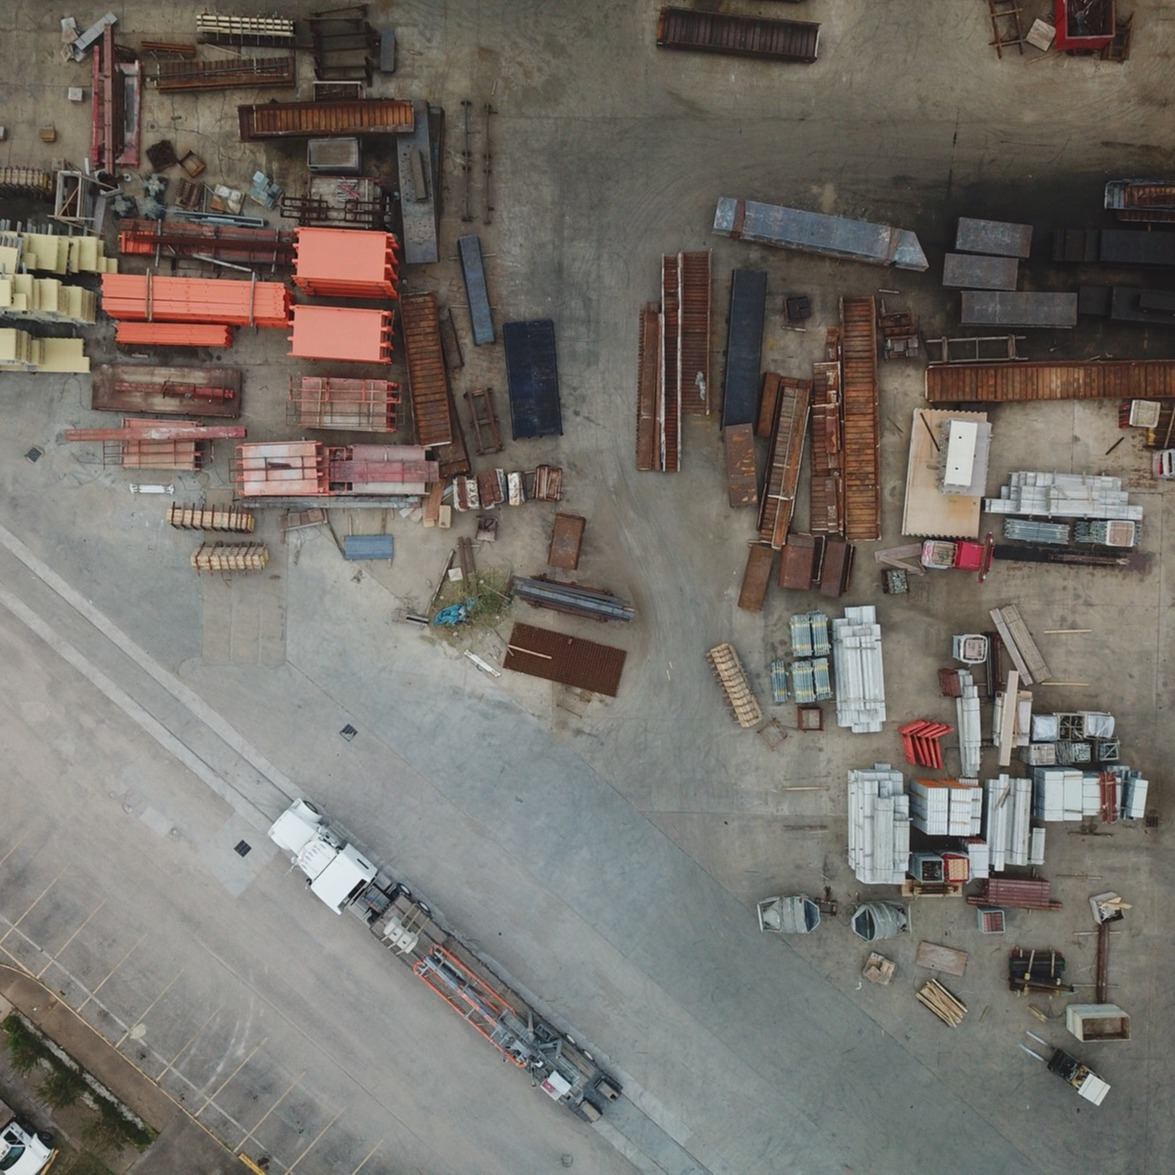 Aerial view of an industrial work yard